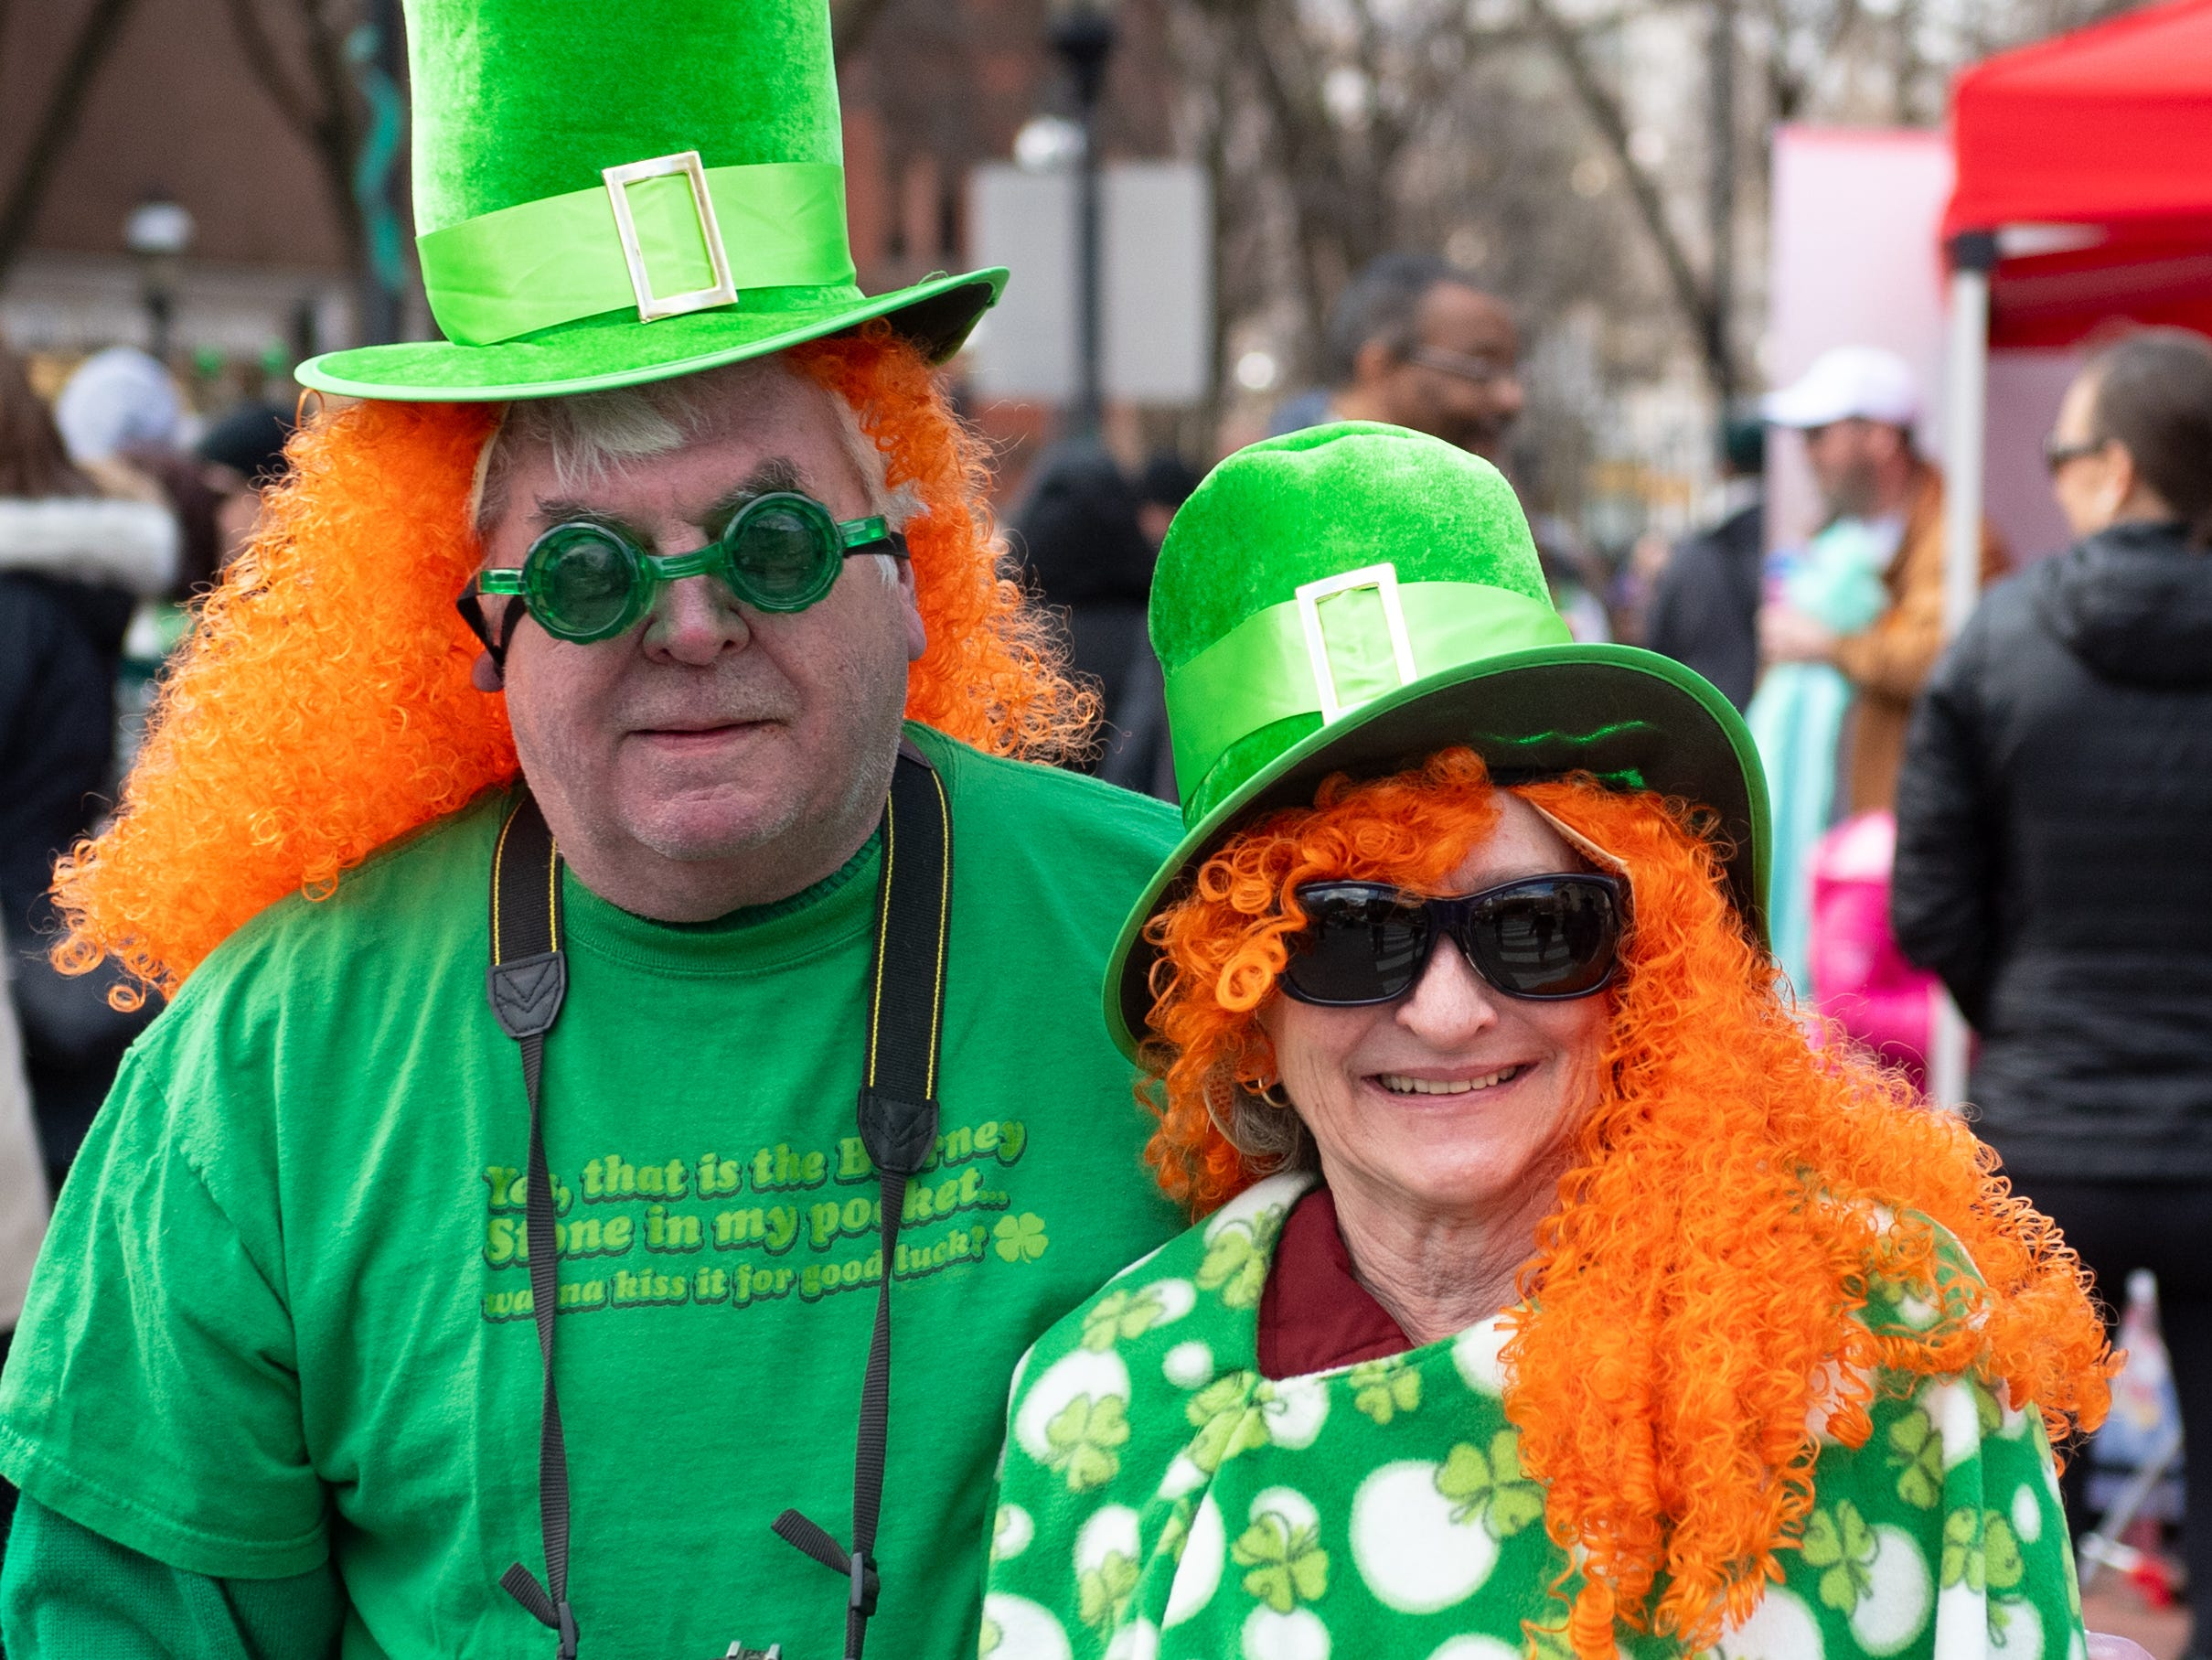 Gregg and Bonnie Moll went all out for the York St. Patrick's Day Parade, March 16, 2019.